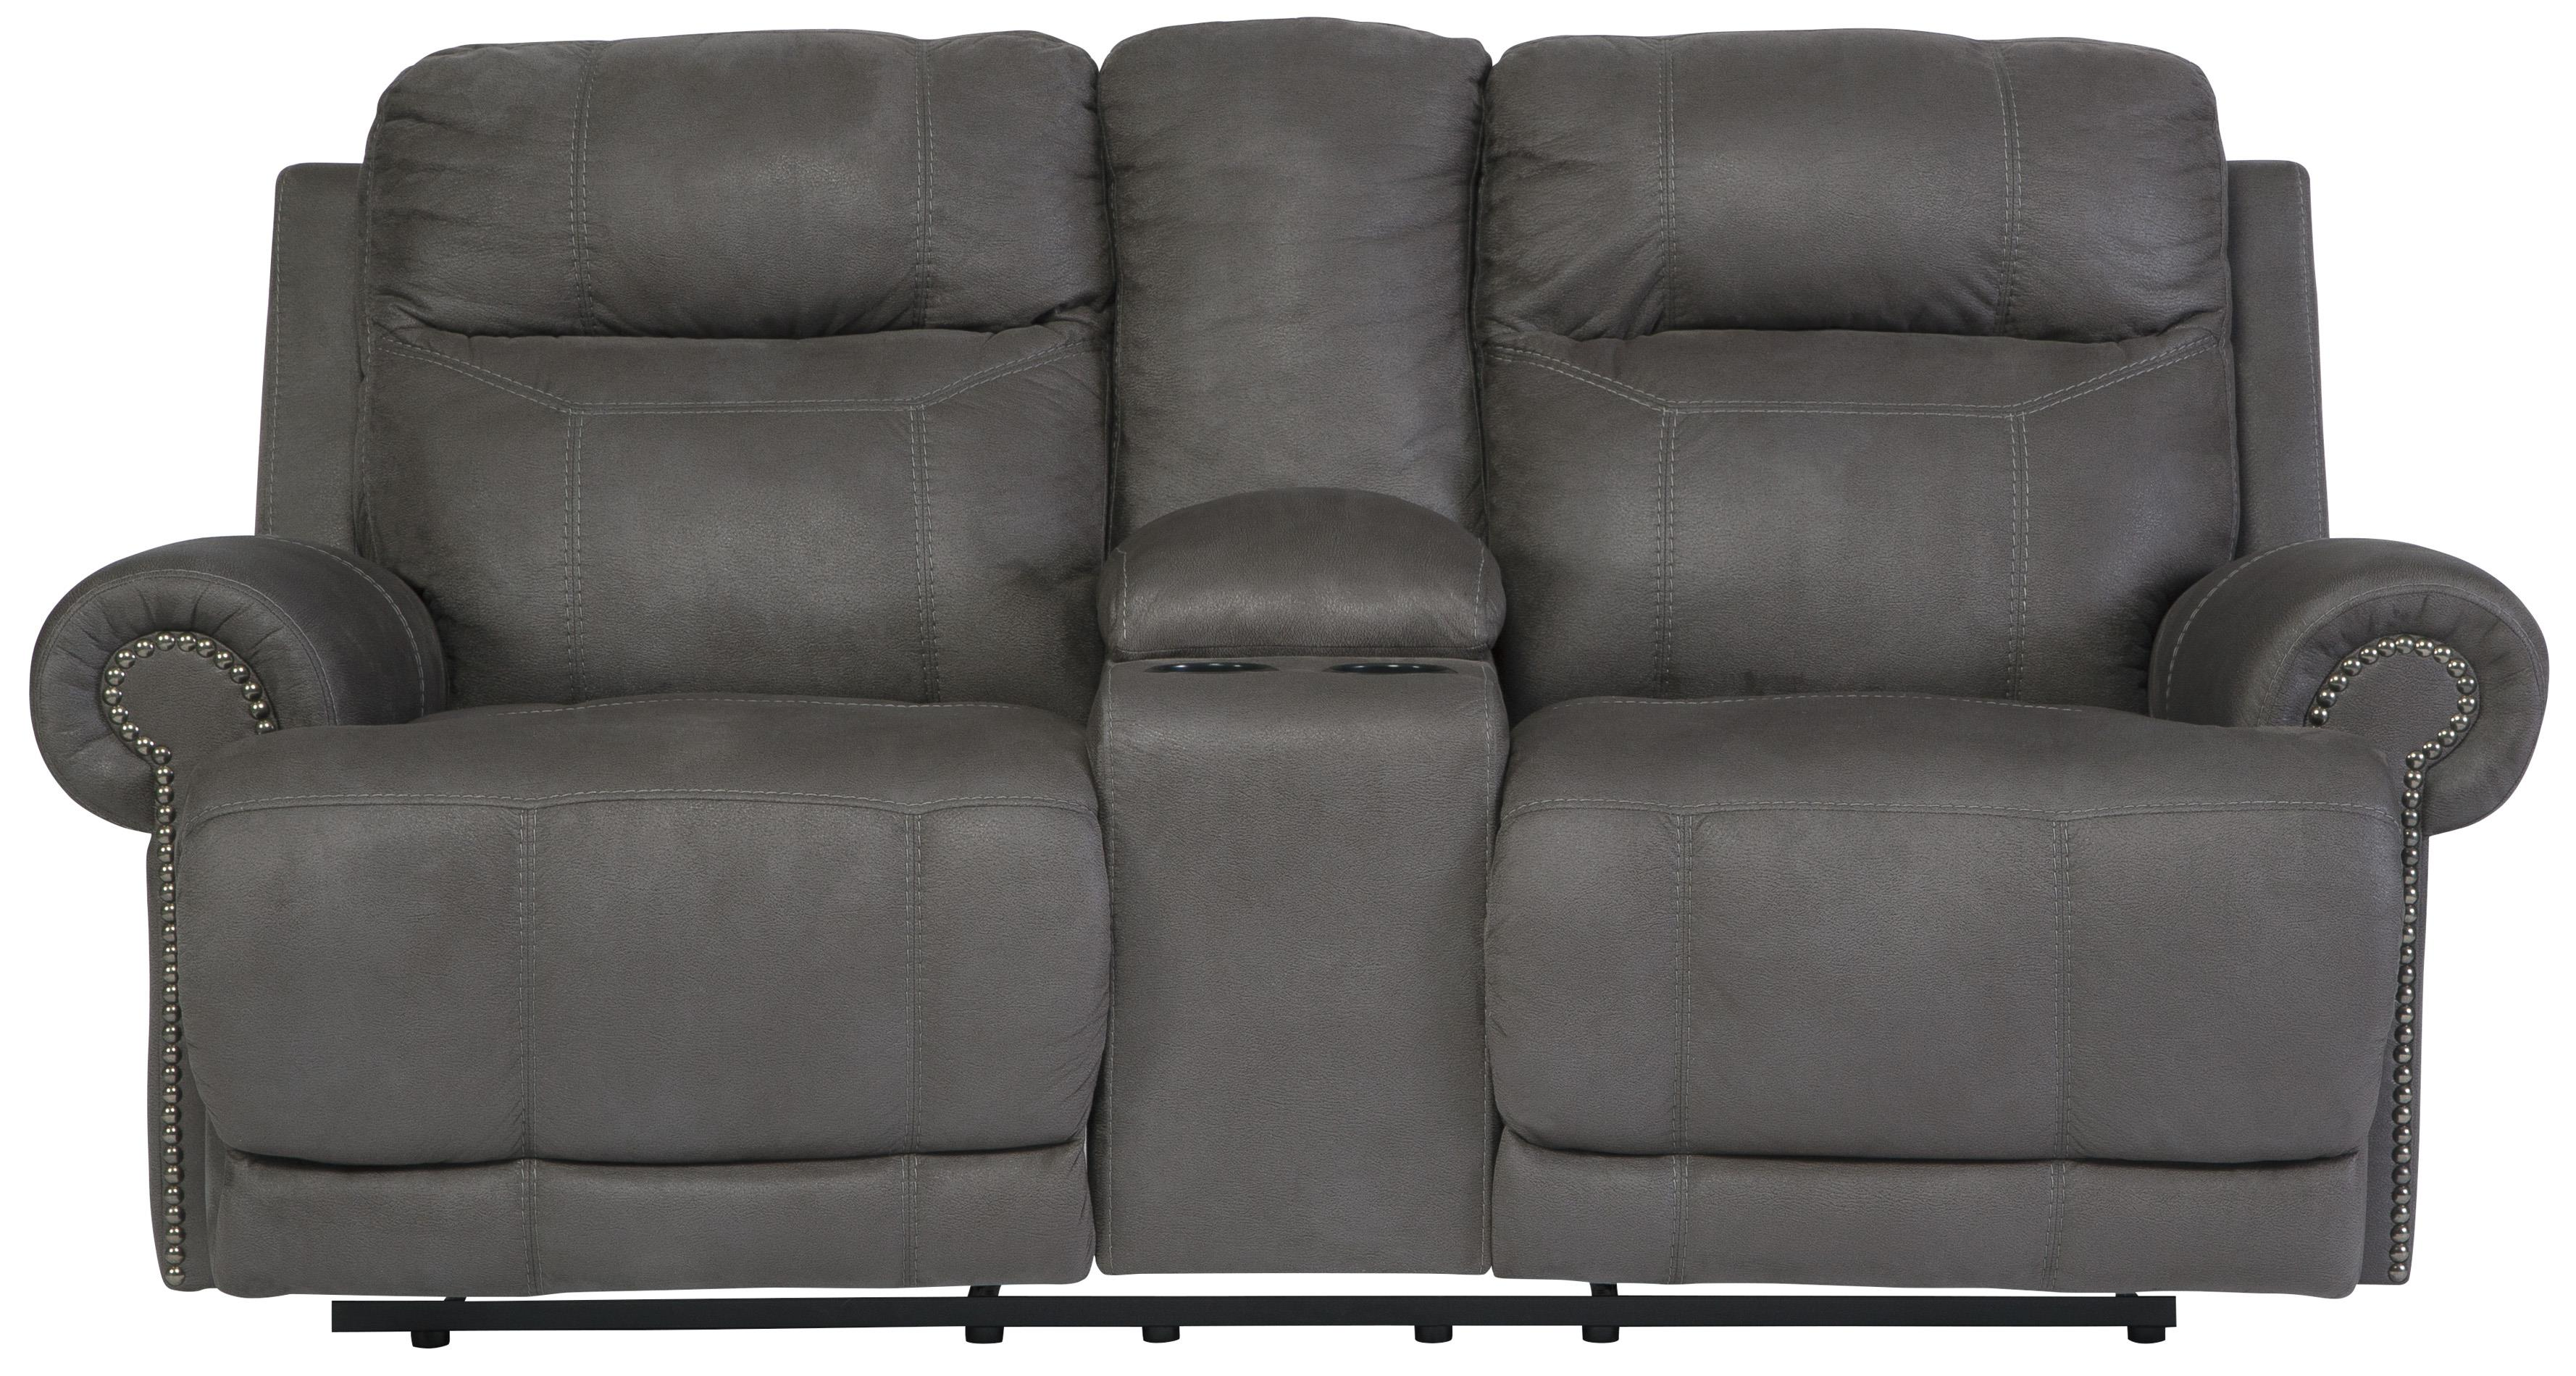 Signature Design By Ashley Austere Gray Double Reclining Loveseat W Console Wayside